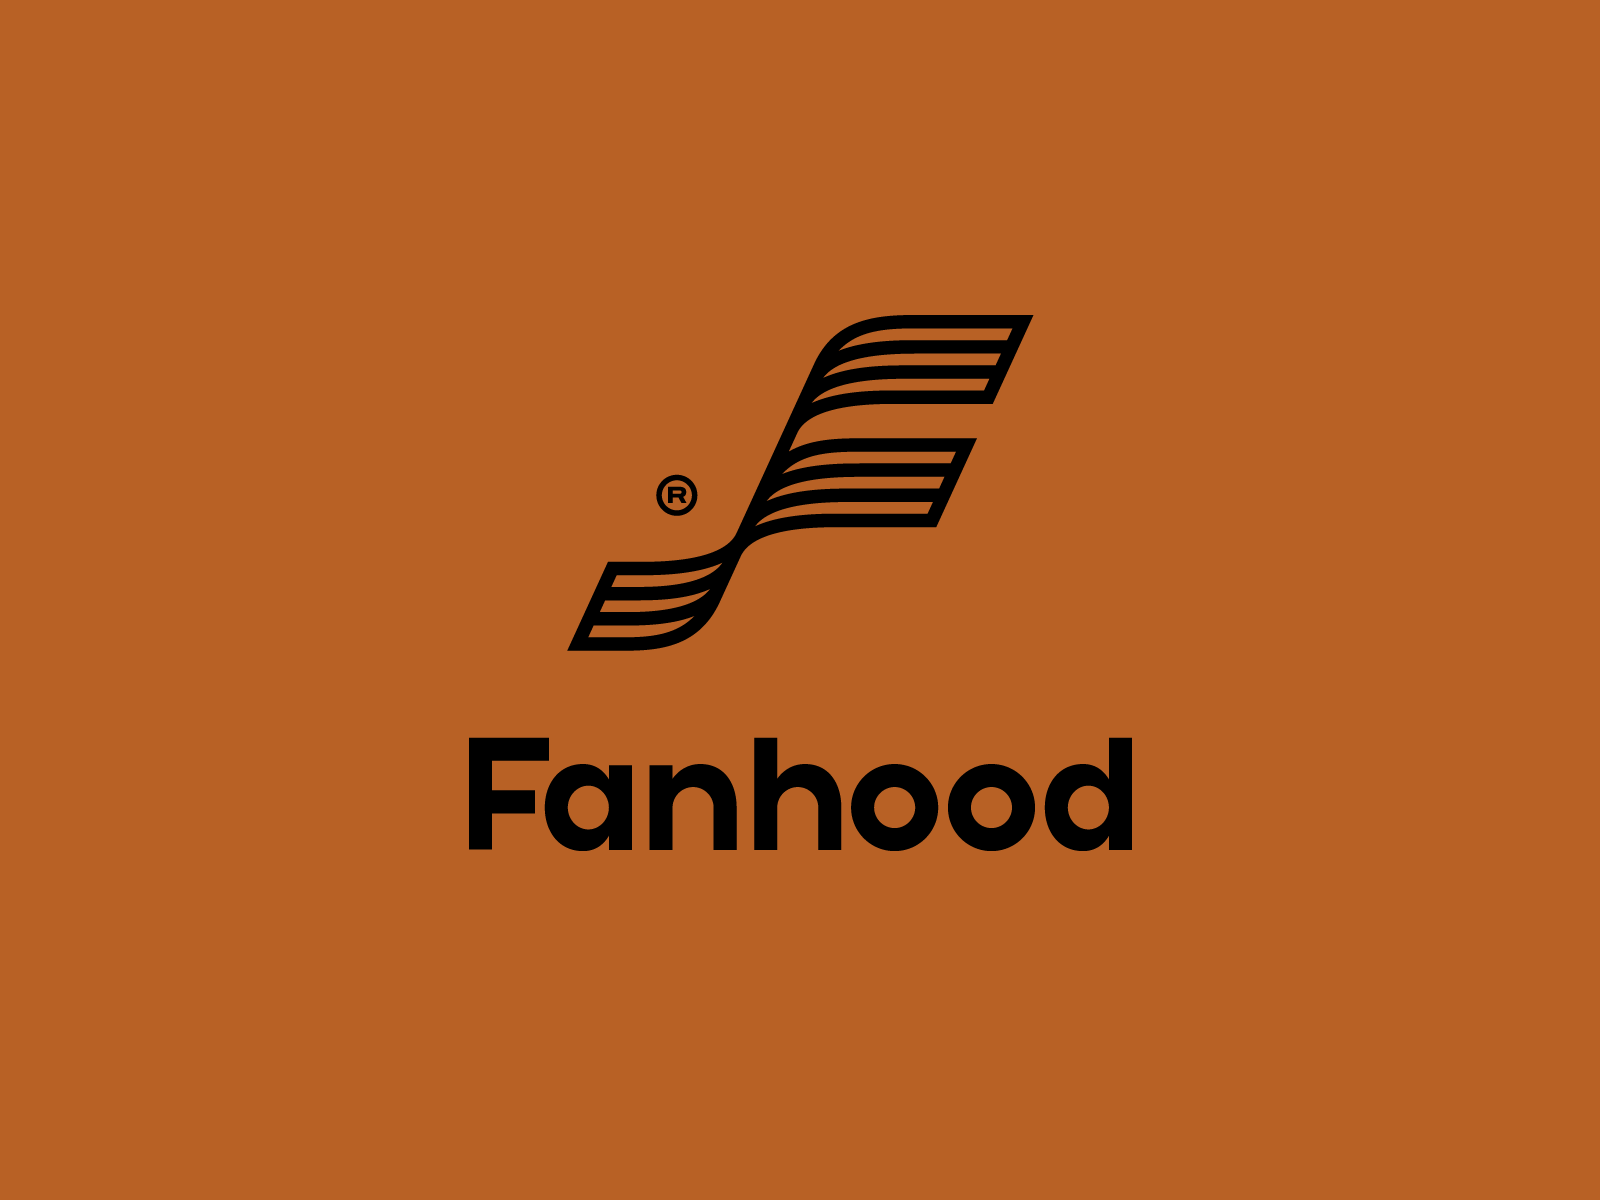 New Logo and Identity for Fanhood by Hoodzpah